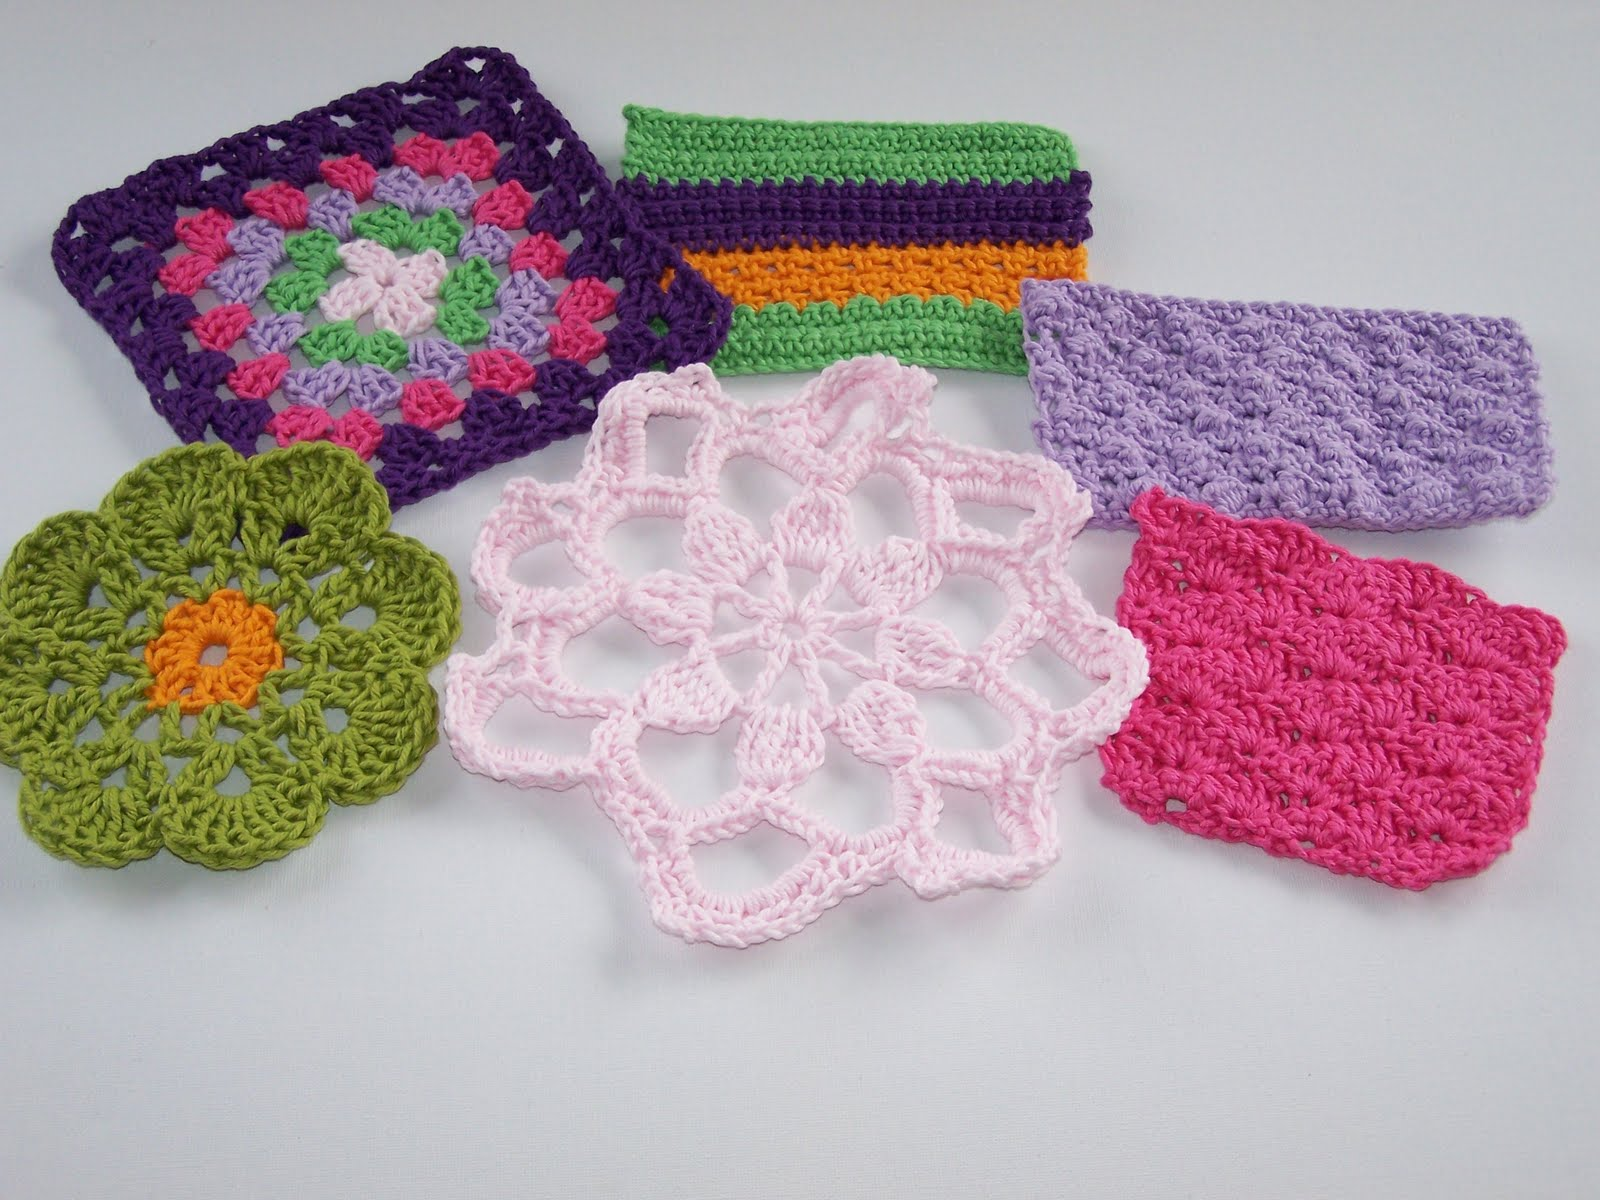 Learn How To Make Crochet Patterns : Learn How To Crochet Free ? Crochet Club